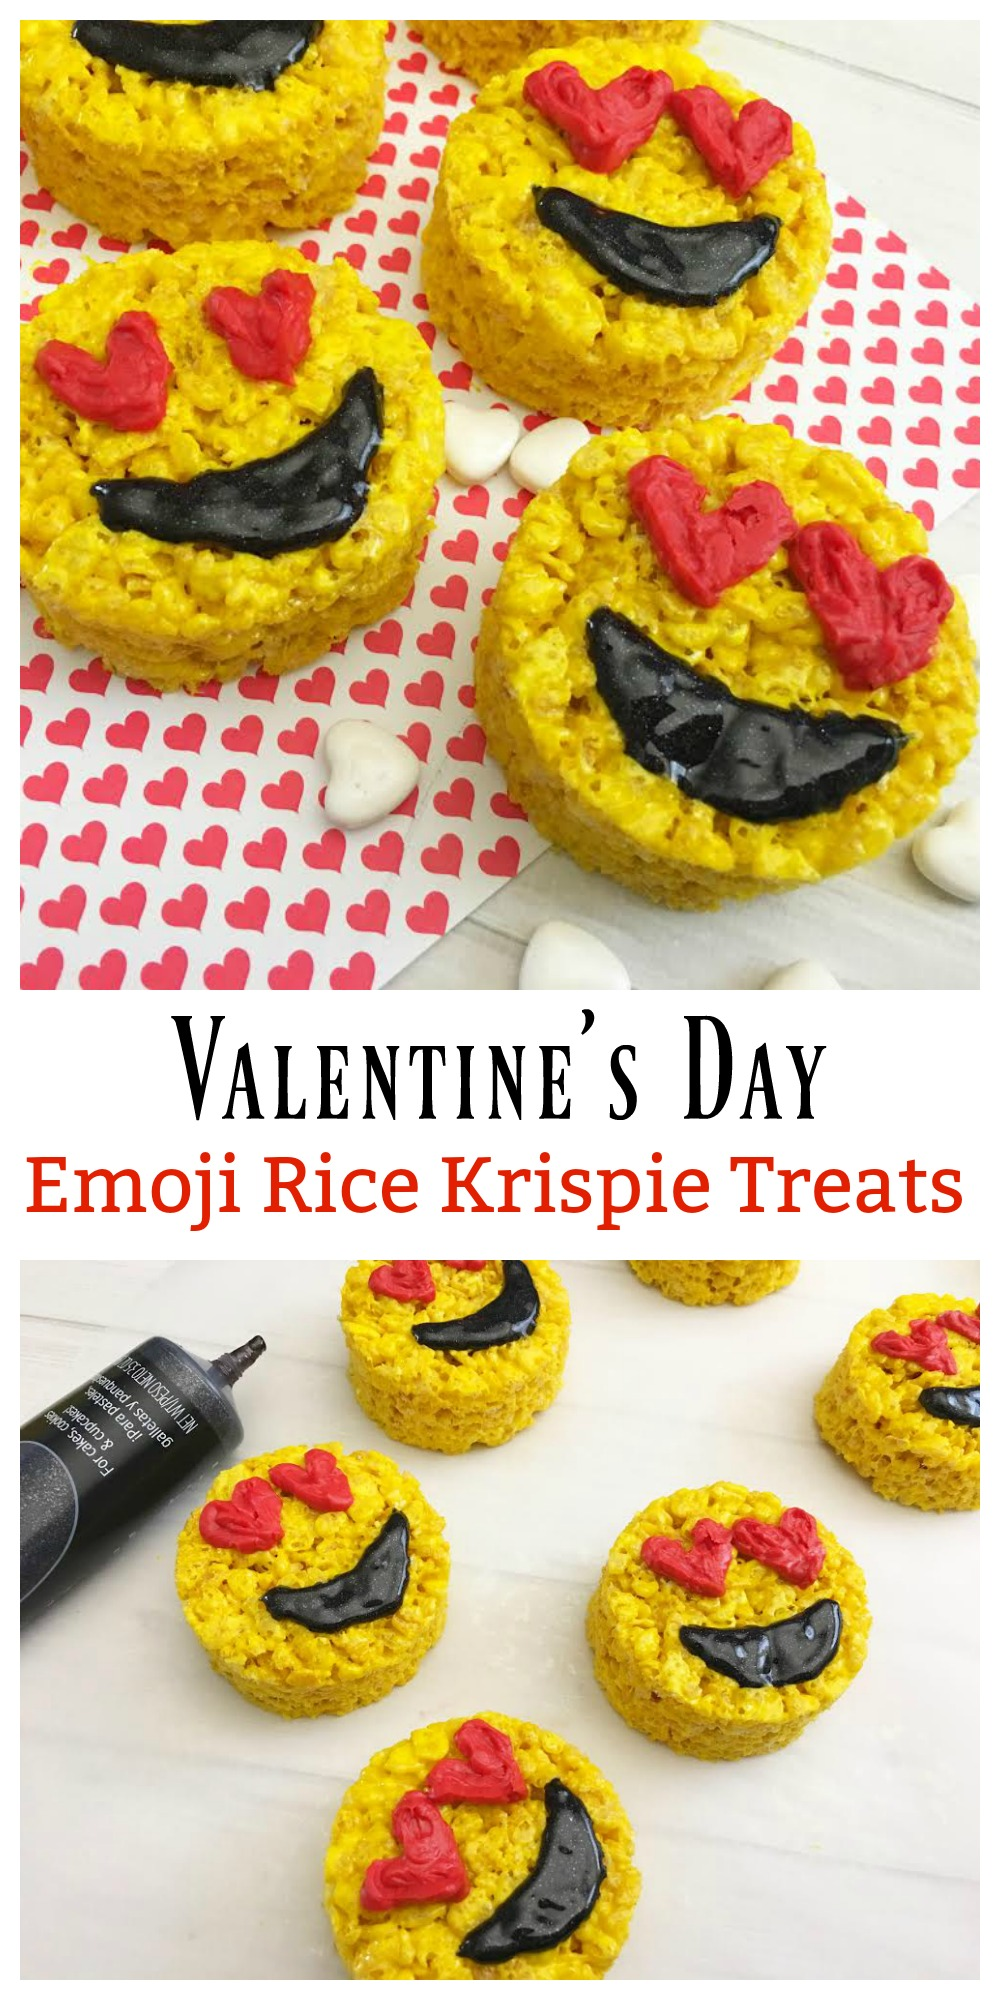 If you are looking for a fun Valentine's Day treat that's easy to make, try these Valentine's Day Emoji Rice Krispie Treats!